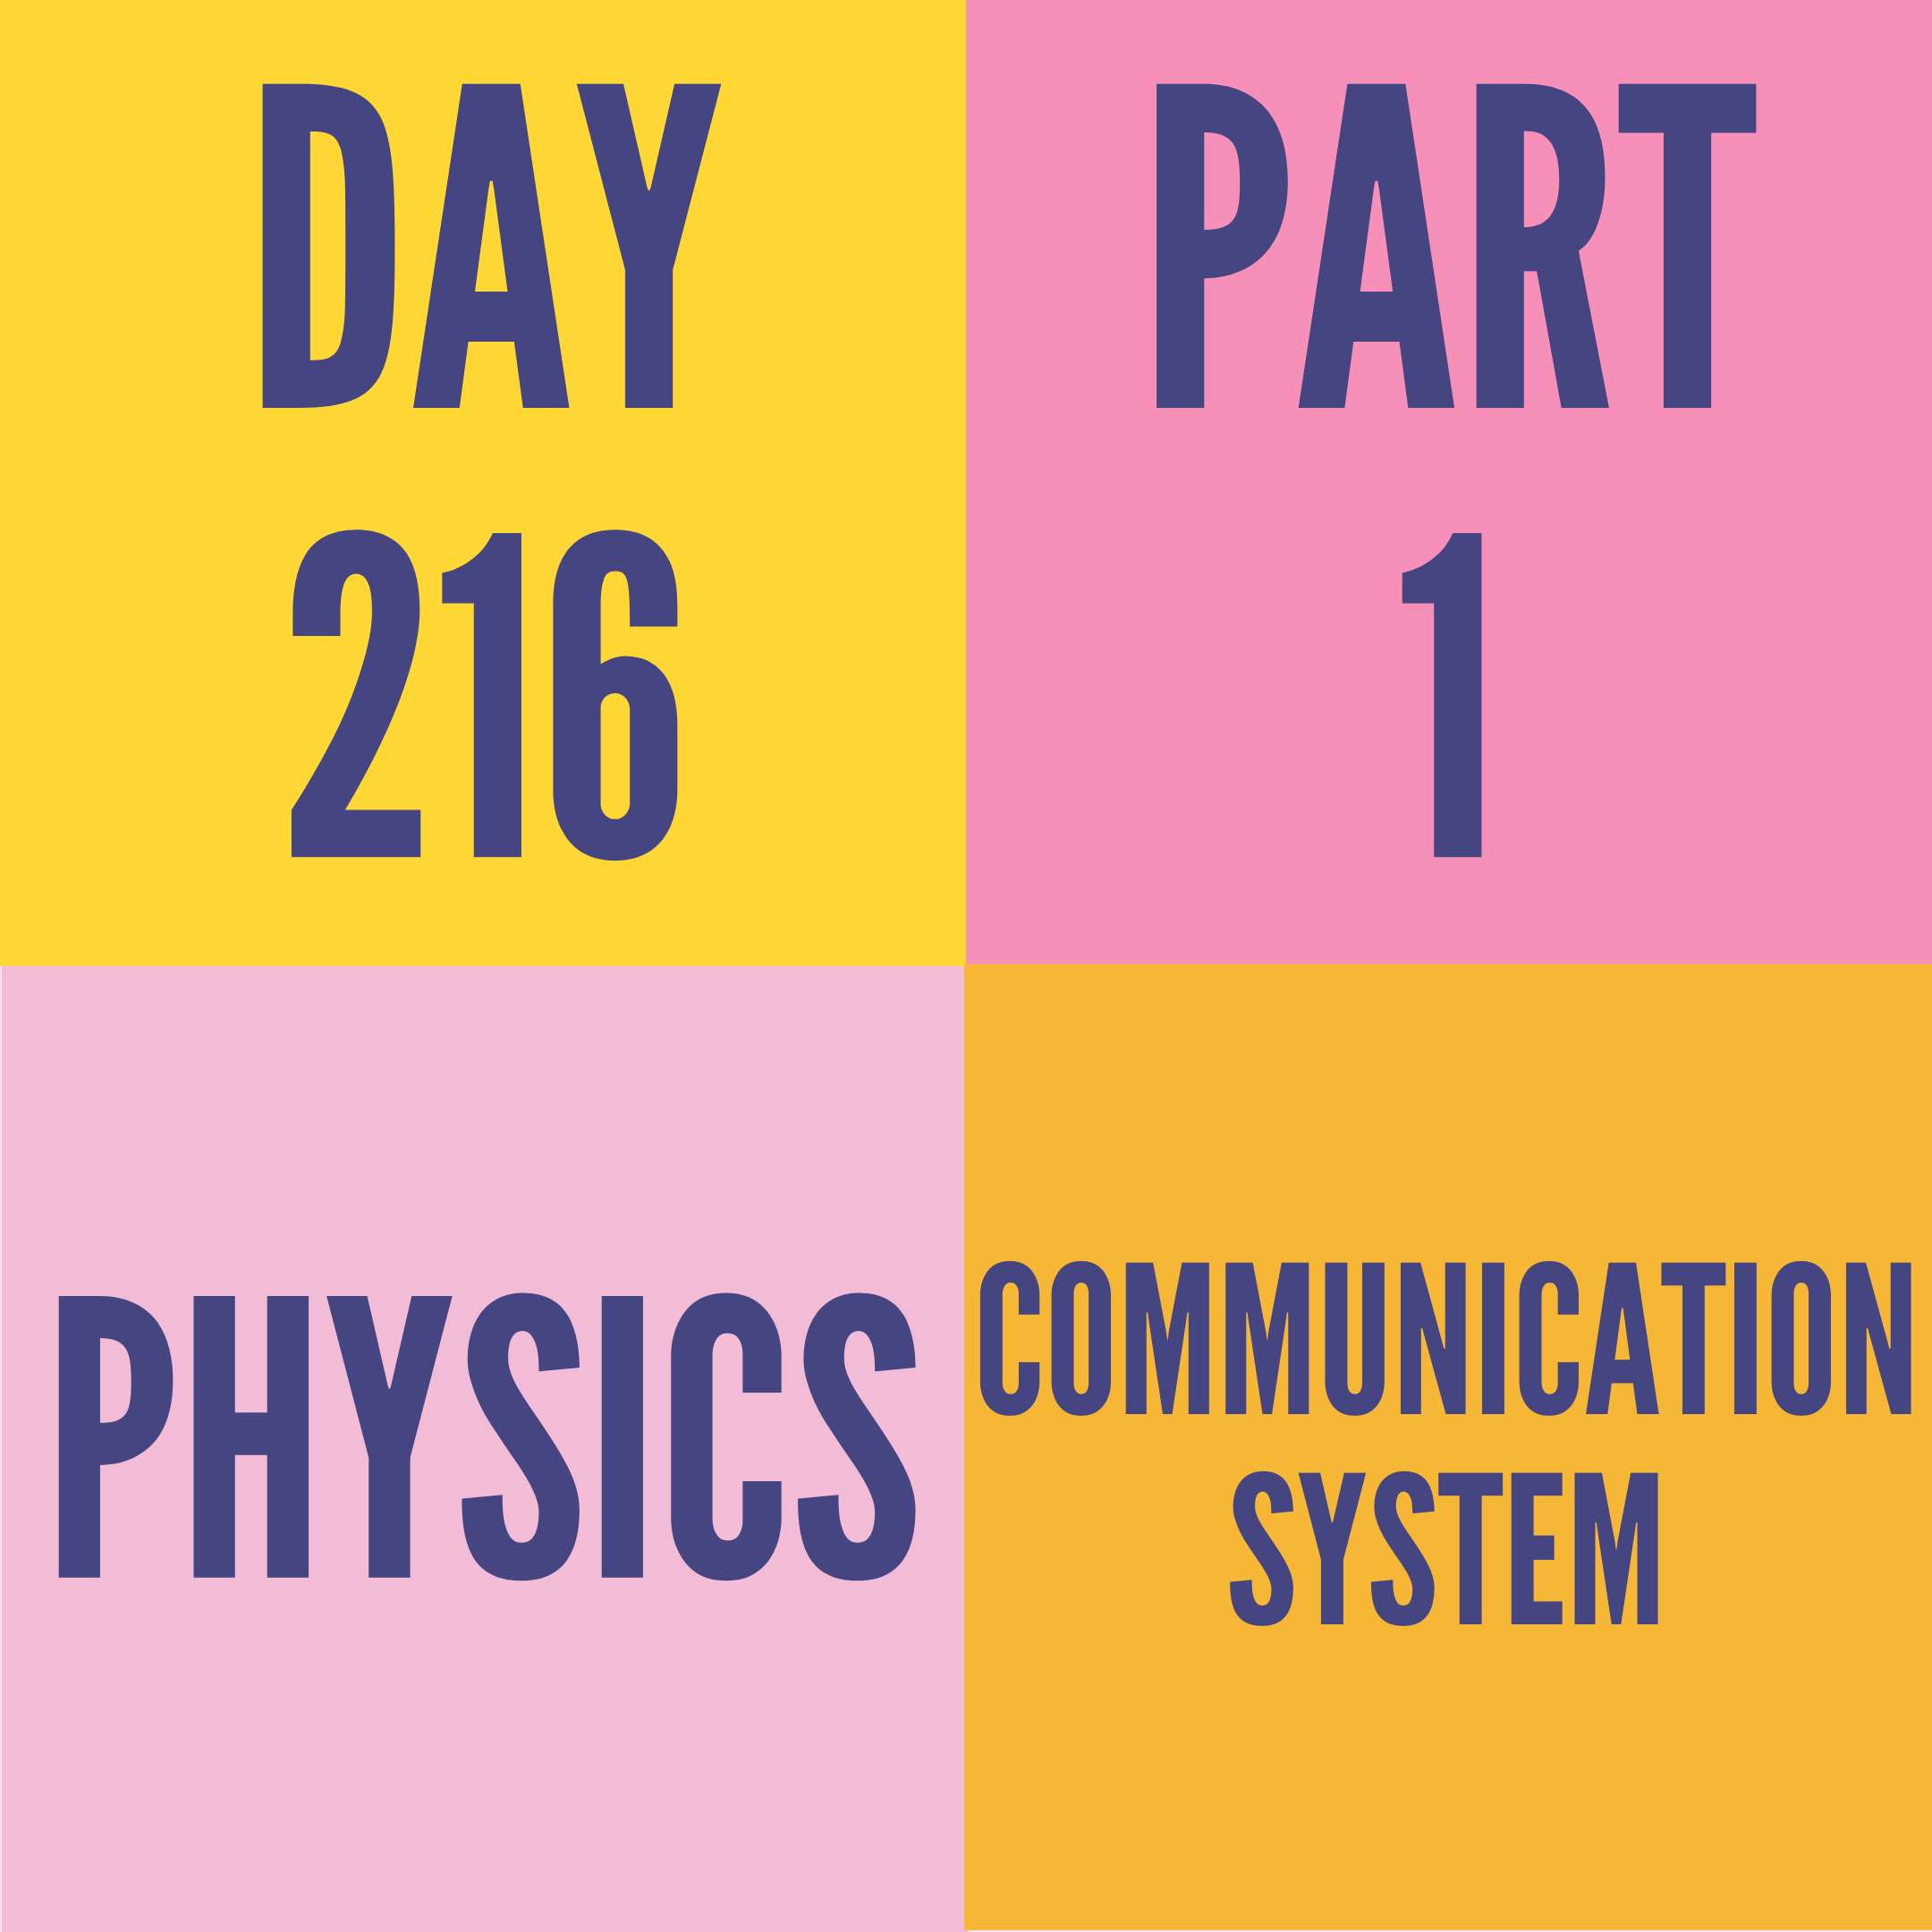 DAY-216 PART-1 COMMUNICATION SYSTEM